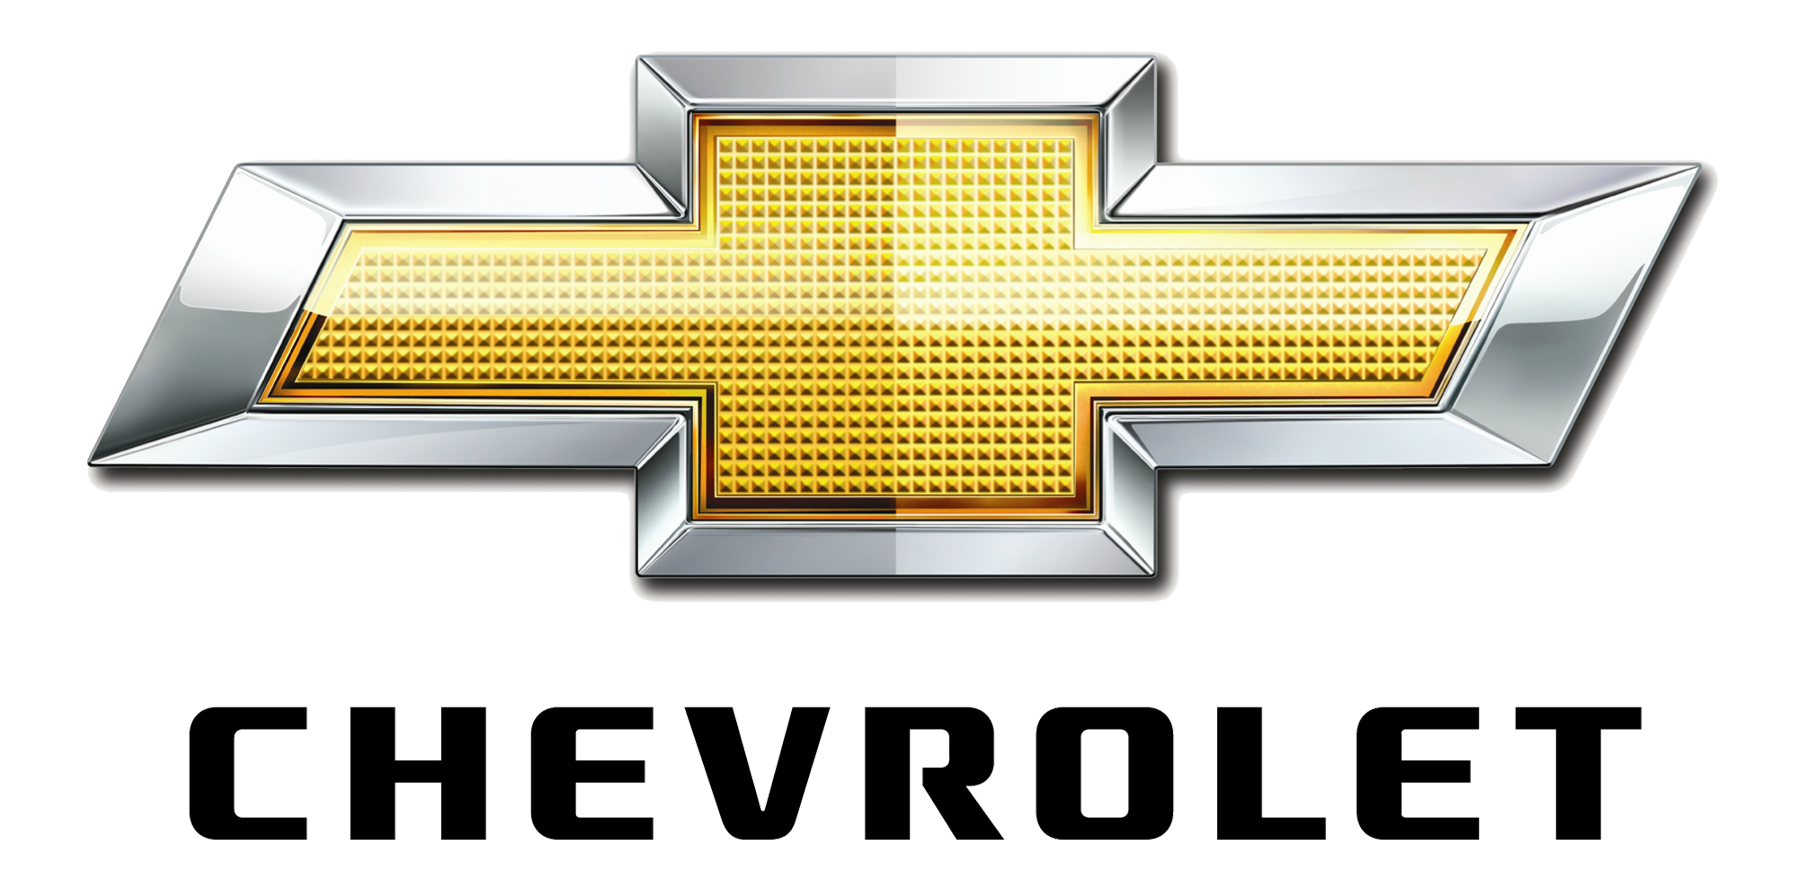 Download Chevrolet Logo Logo With Transparent Background In Png